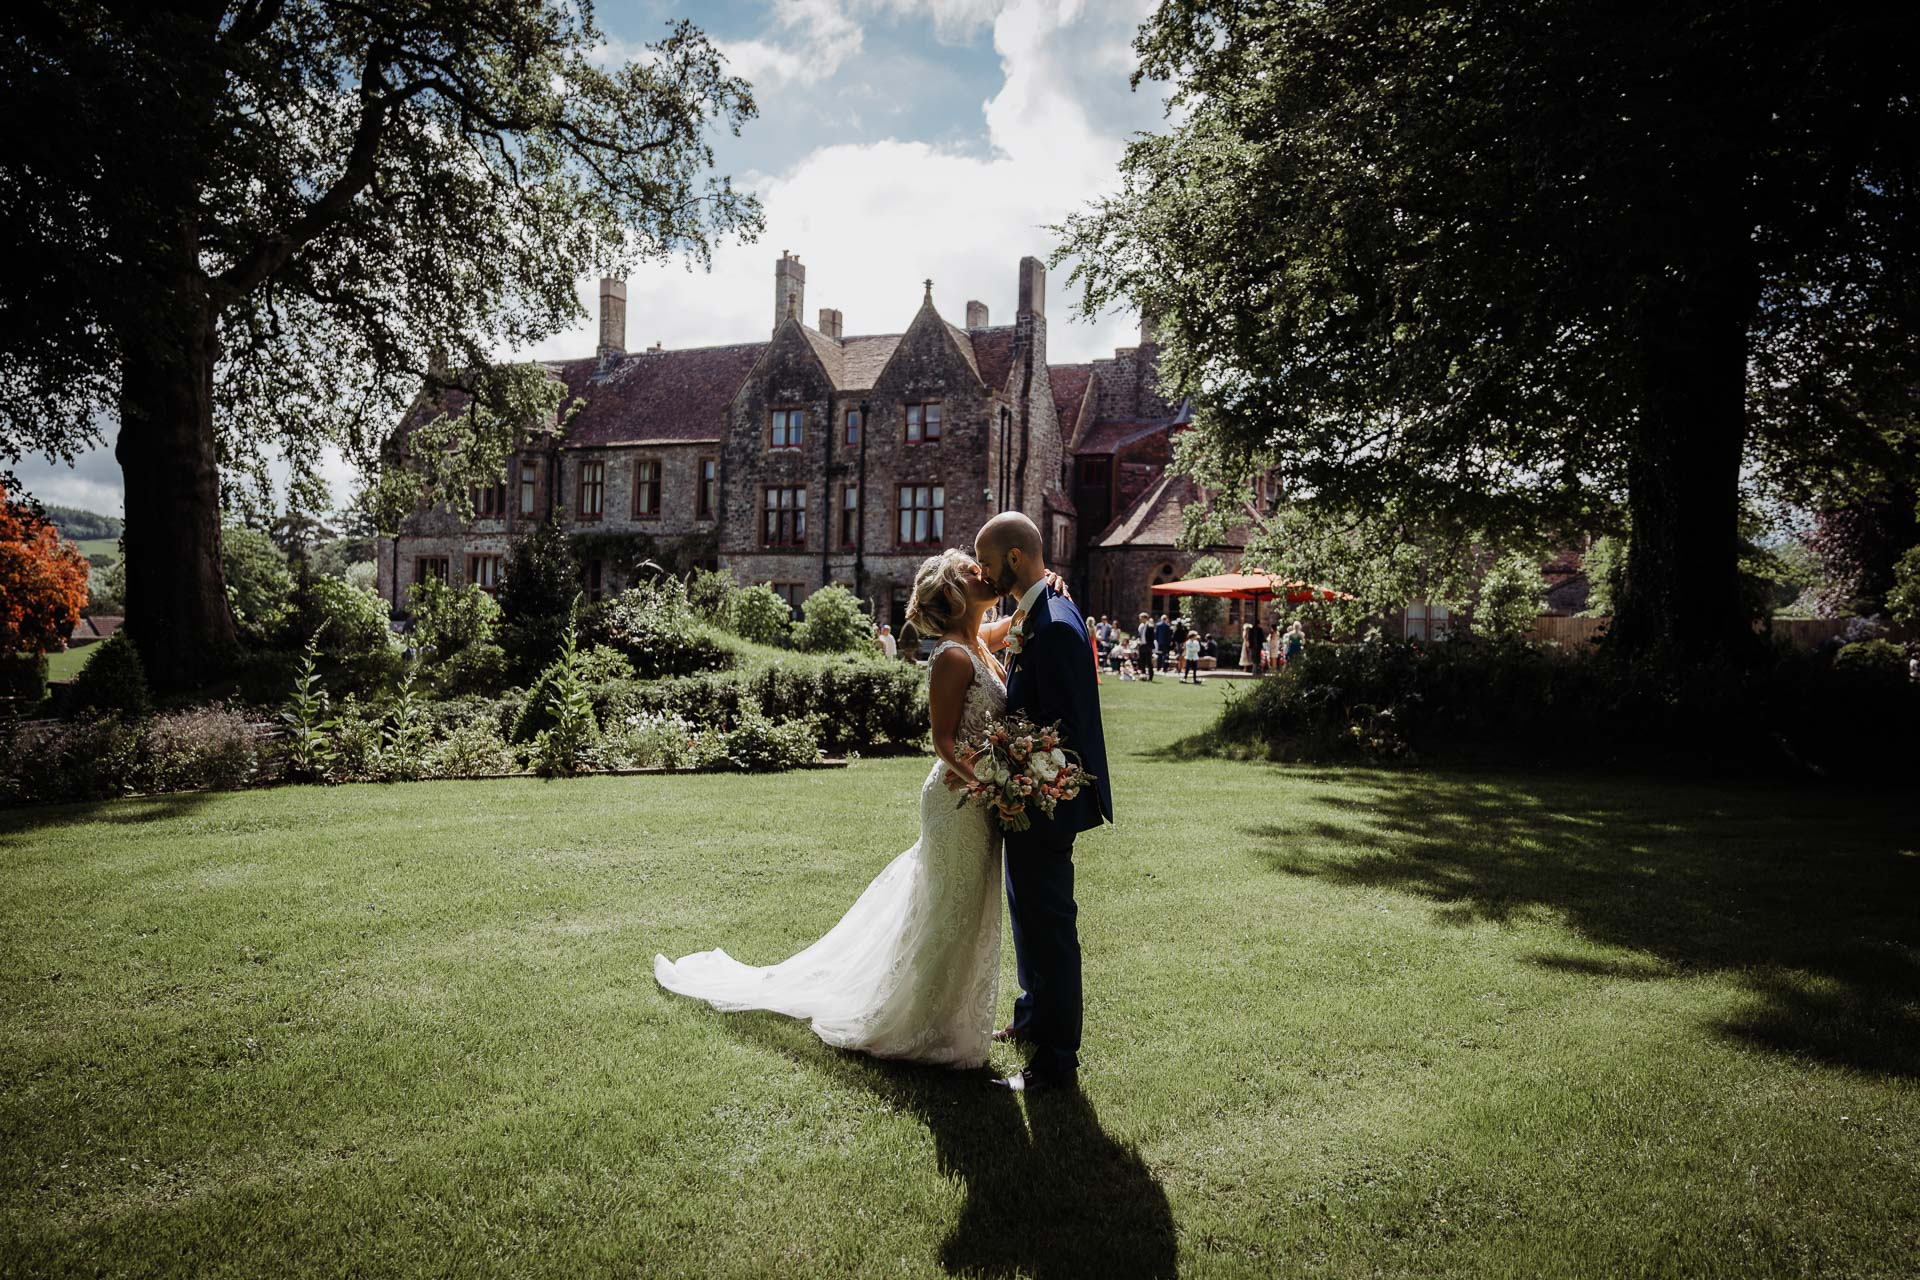 huntsham-court-wedding-photographer-030